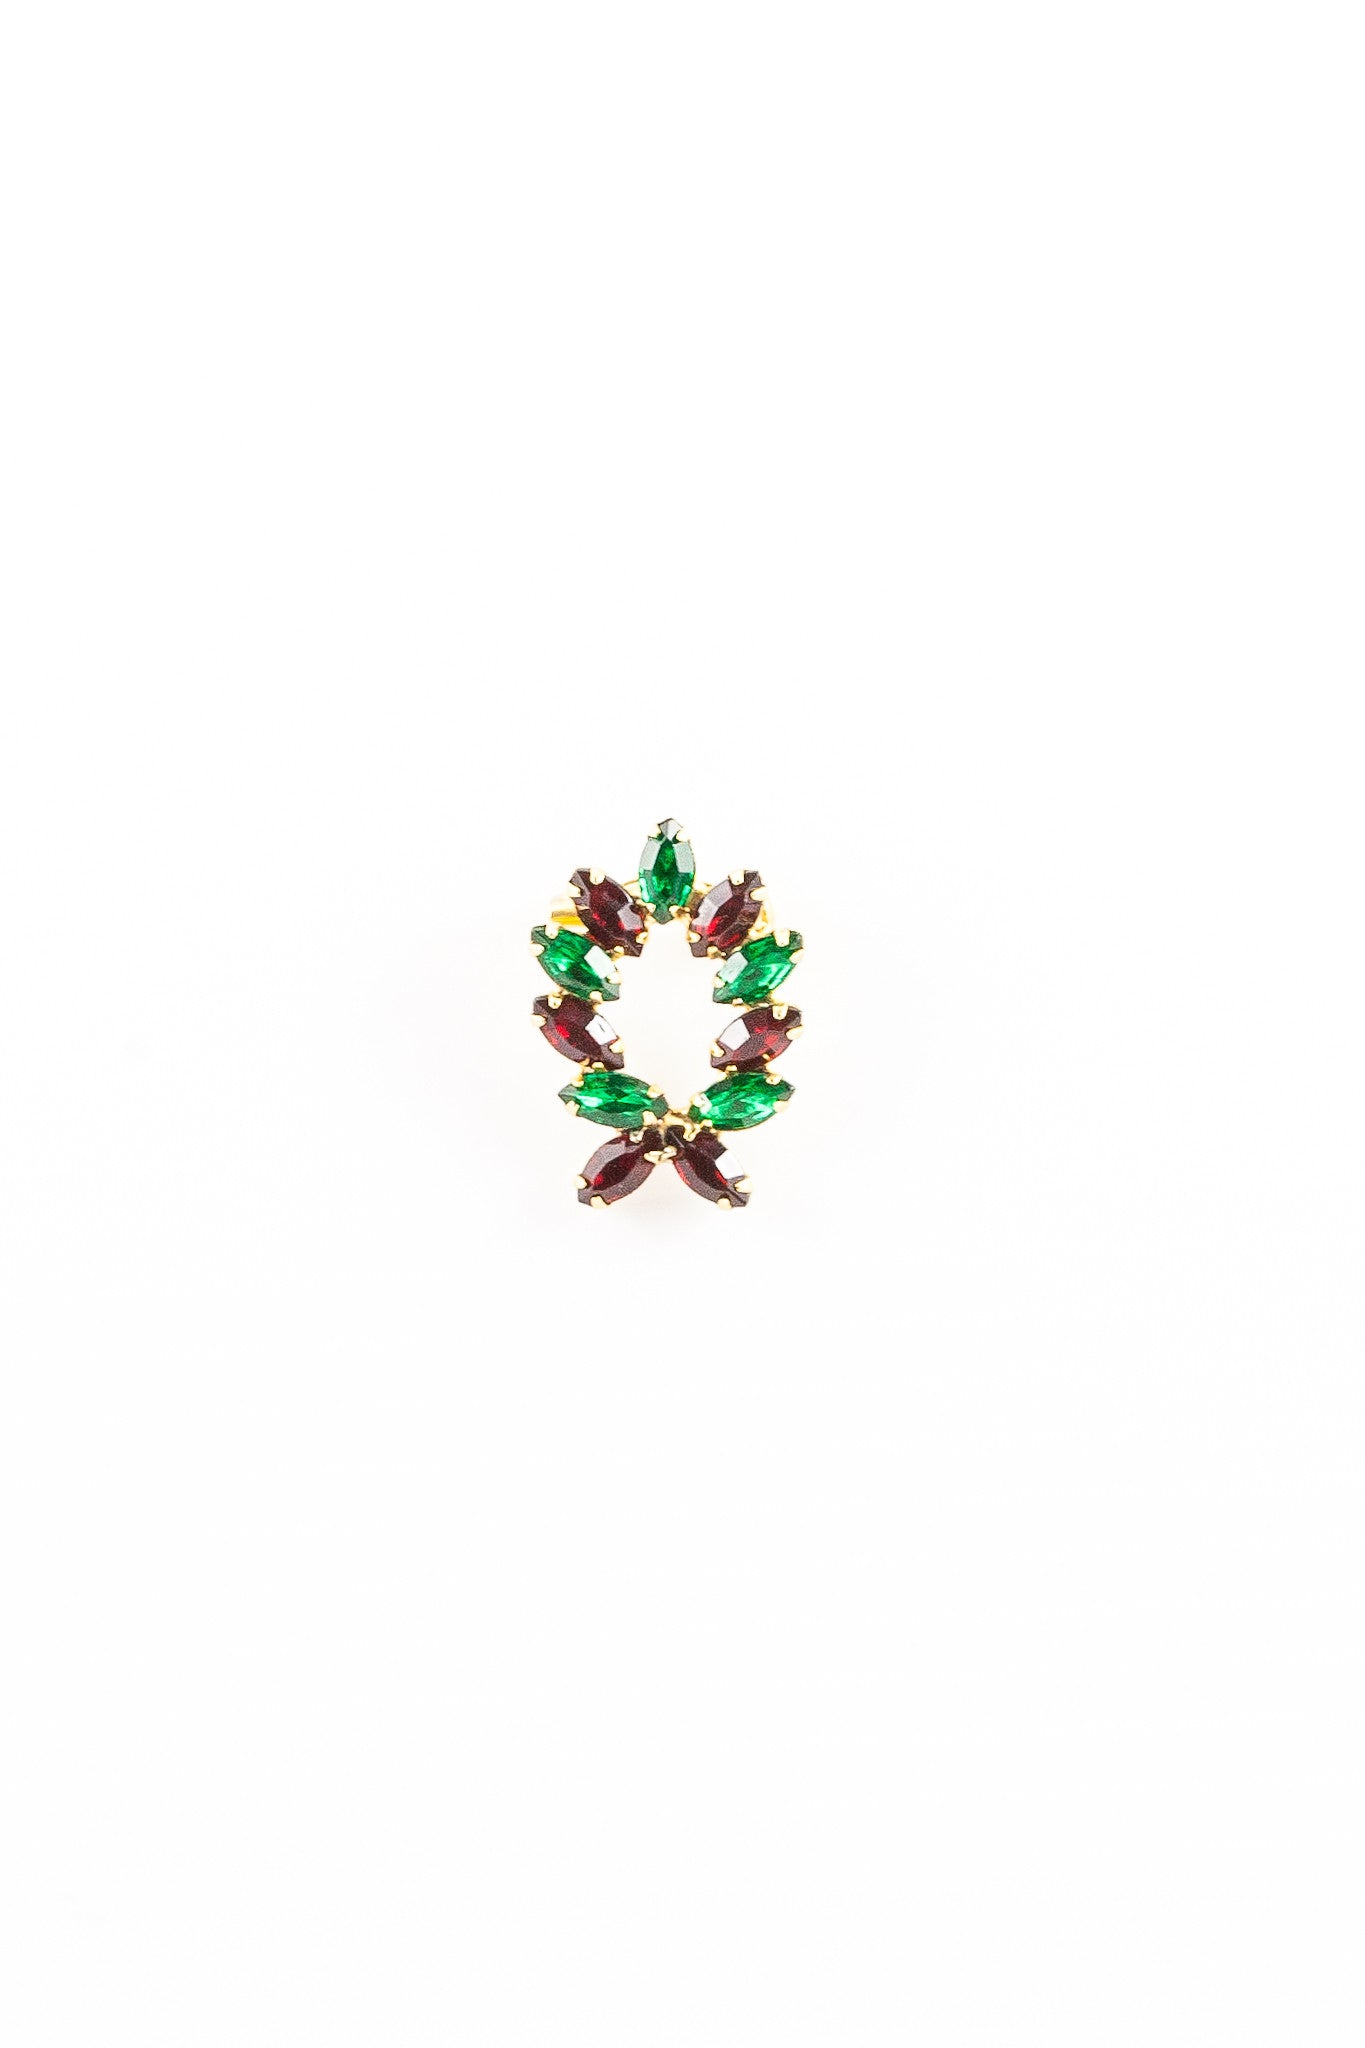 50's__Vintage__Jeweled Wreath Brooch